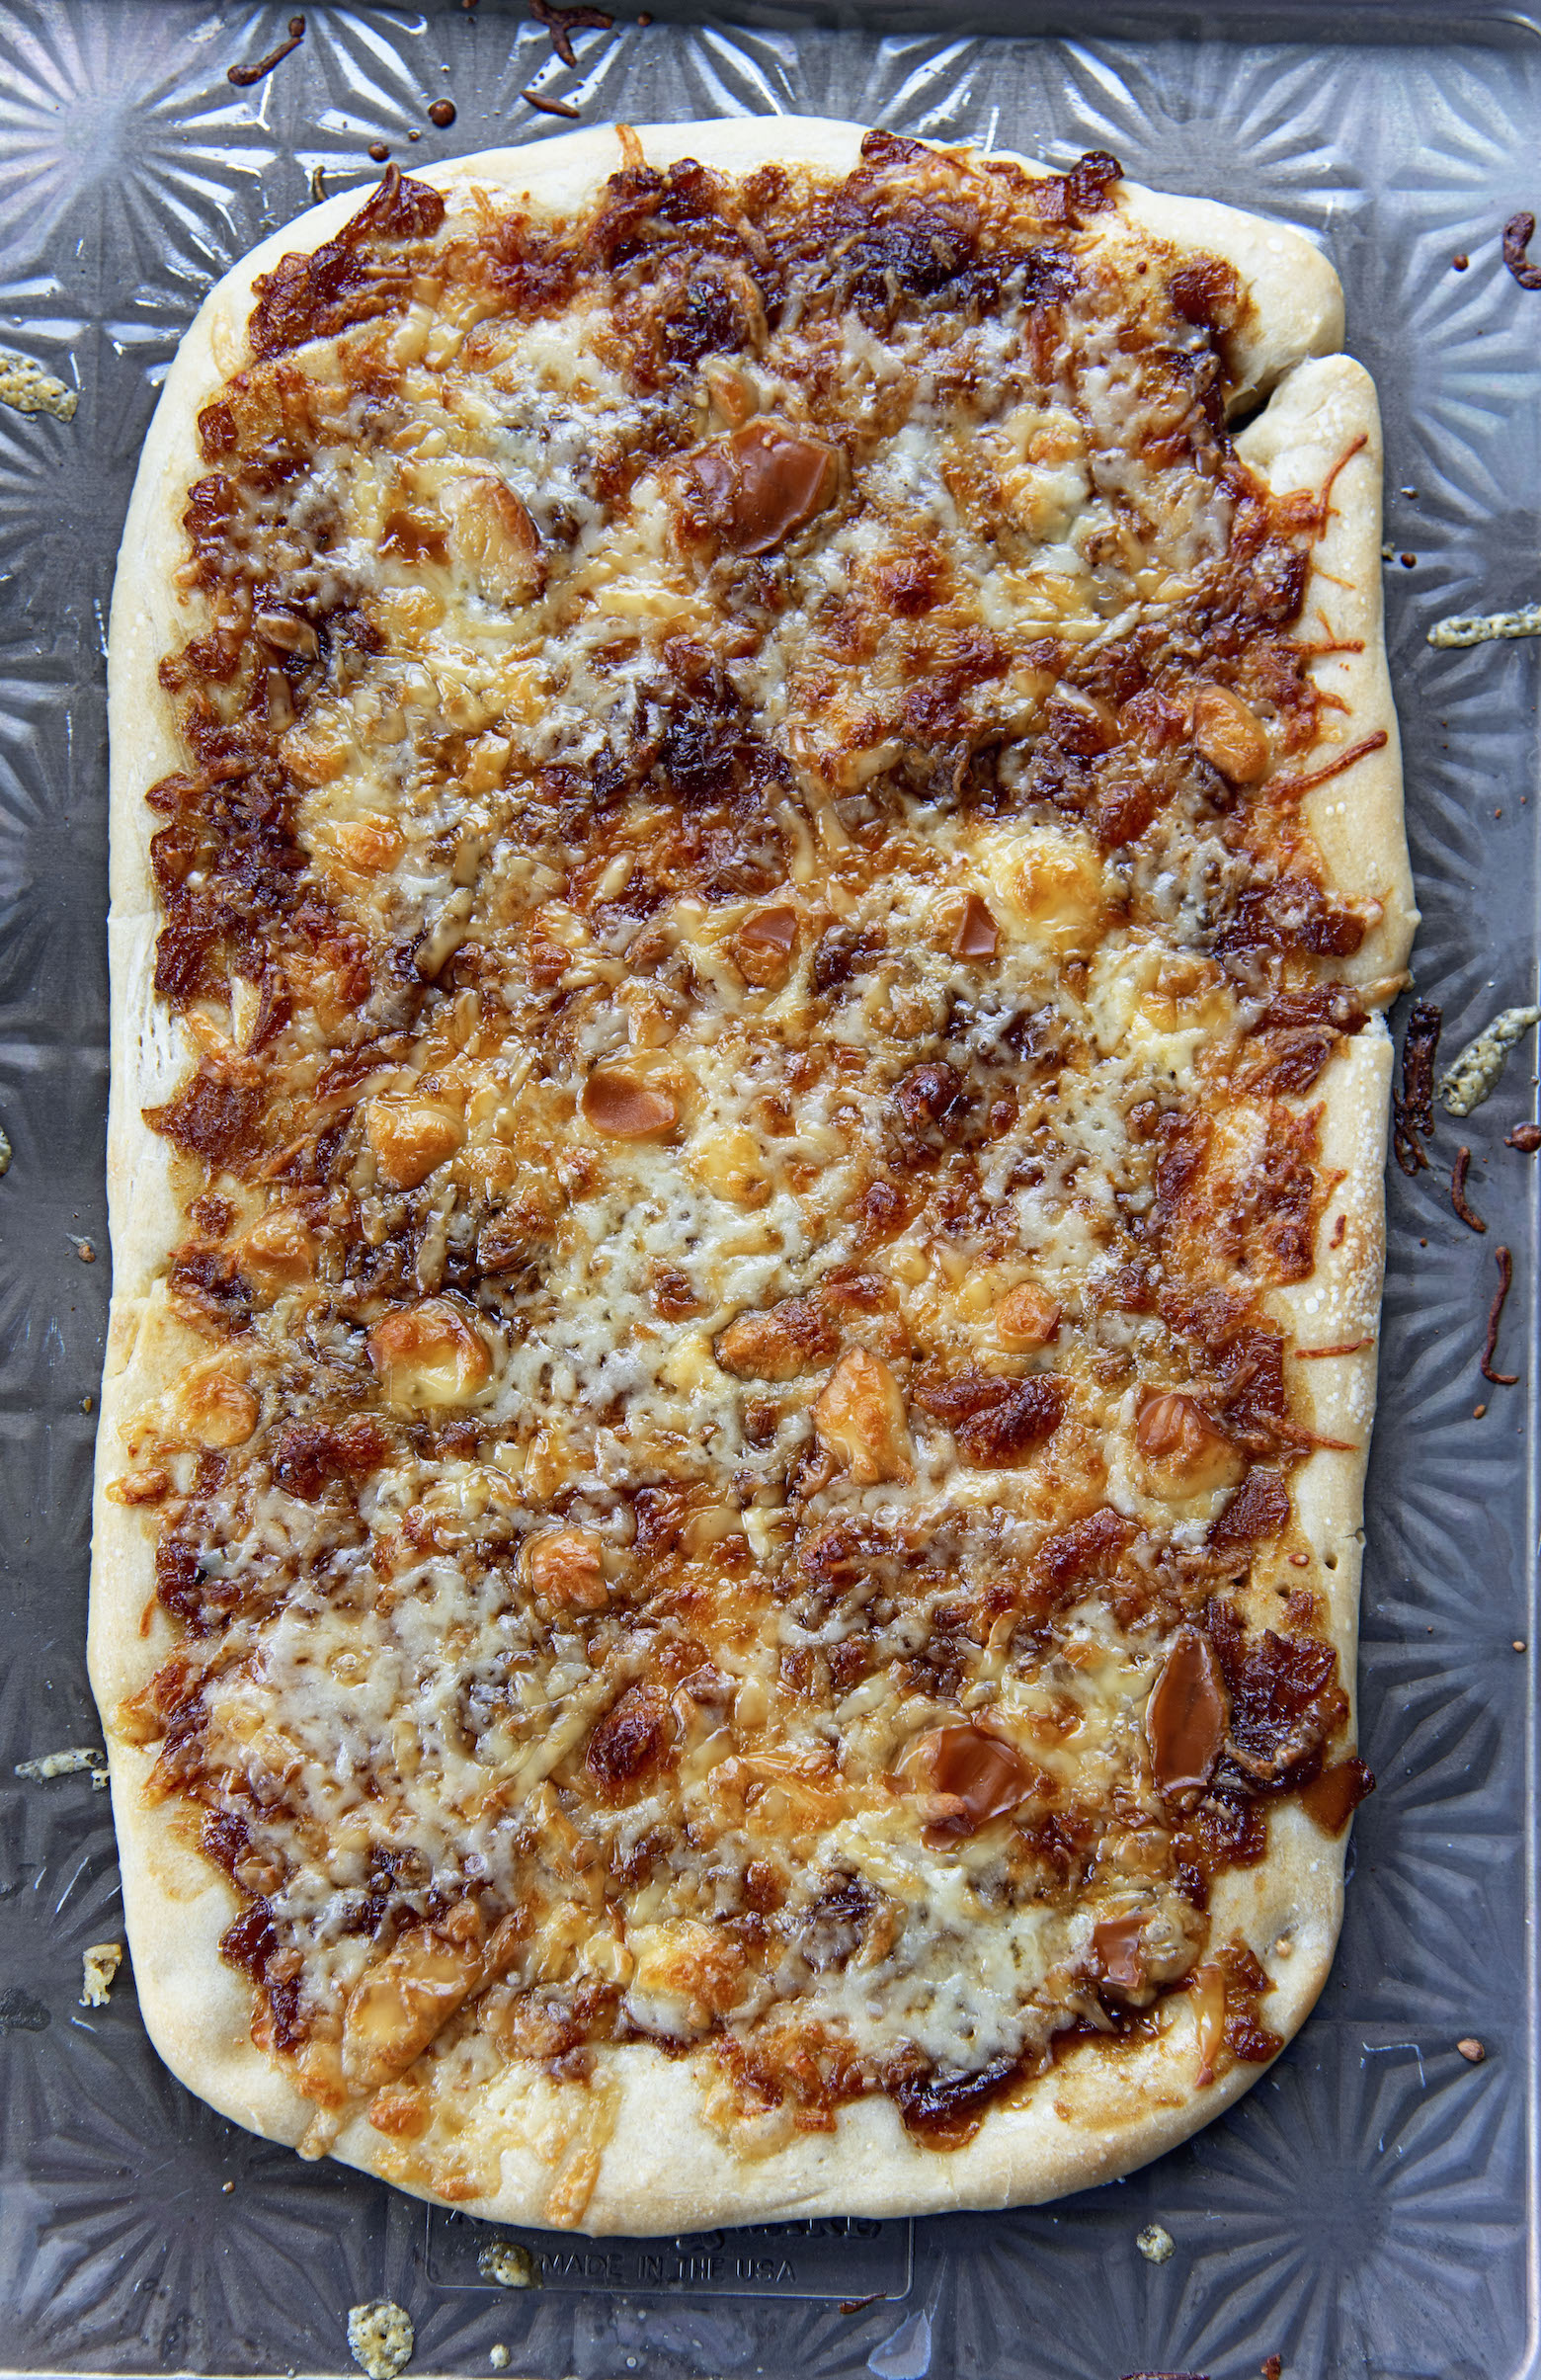 Full sheet of French Onion Soup Flatbread on baking sheet.